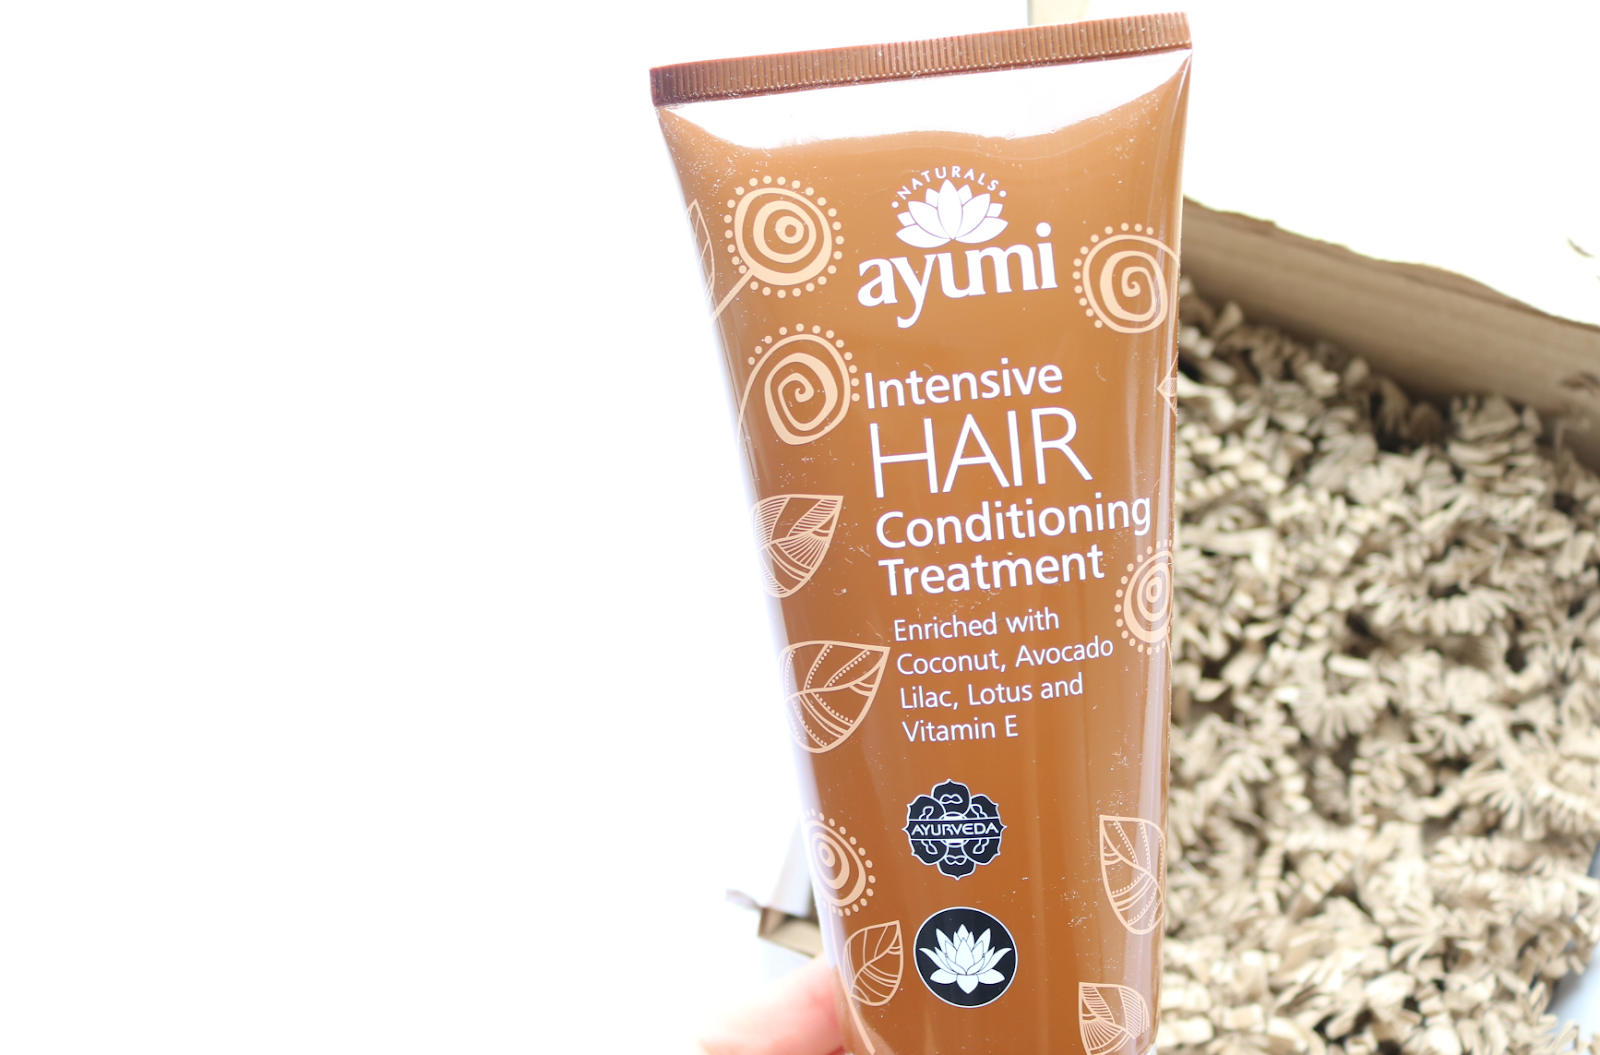 Ayumi Intensive Hair Conditioning Treatment